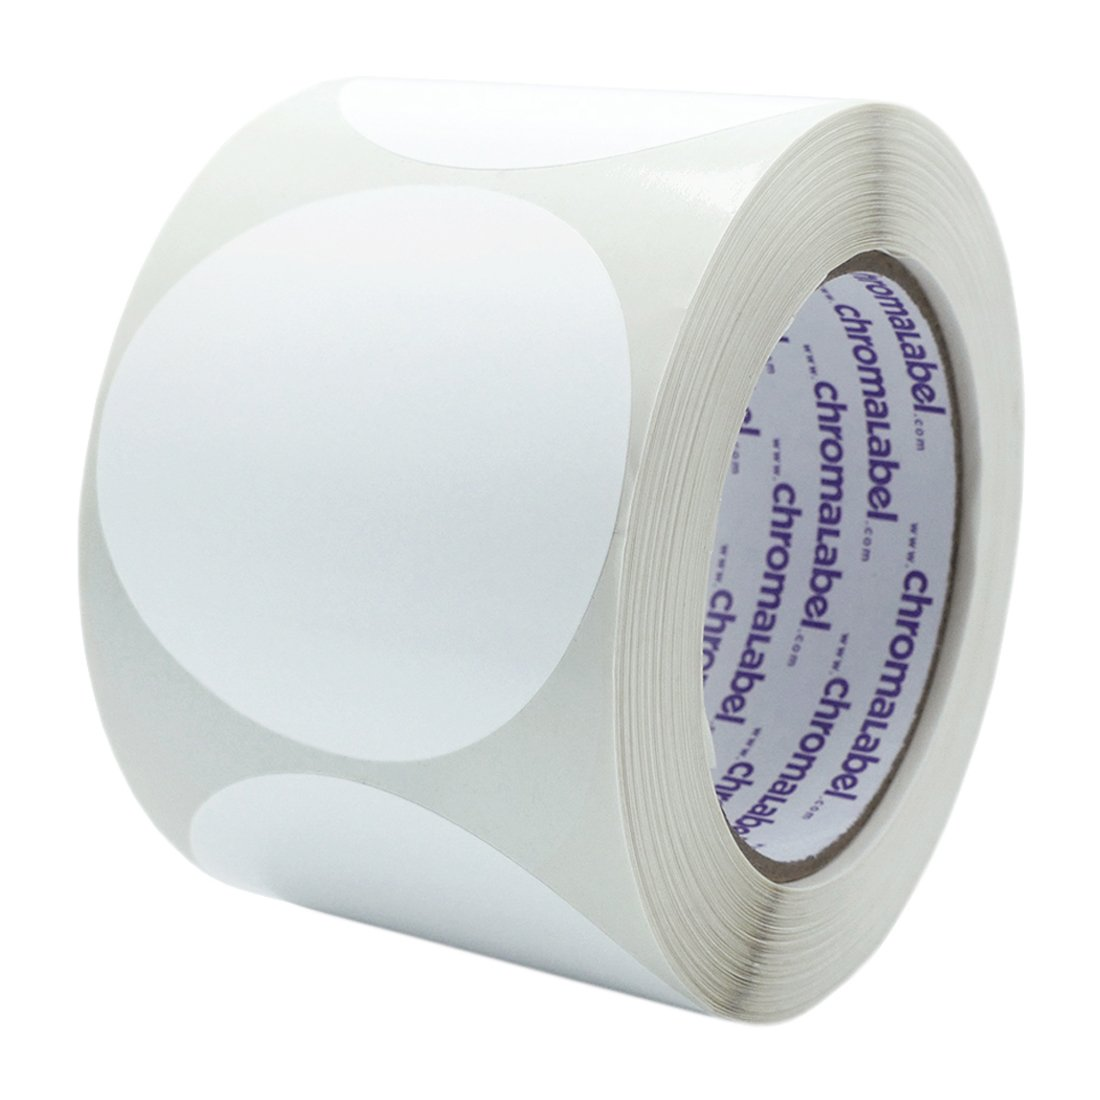 ChromaLabel 3 inch Color-Code Dot Labels | 500/Roll (White)